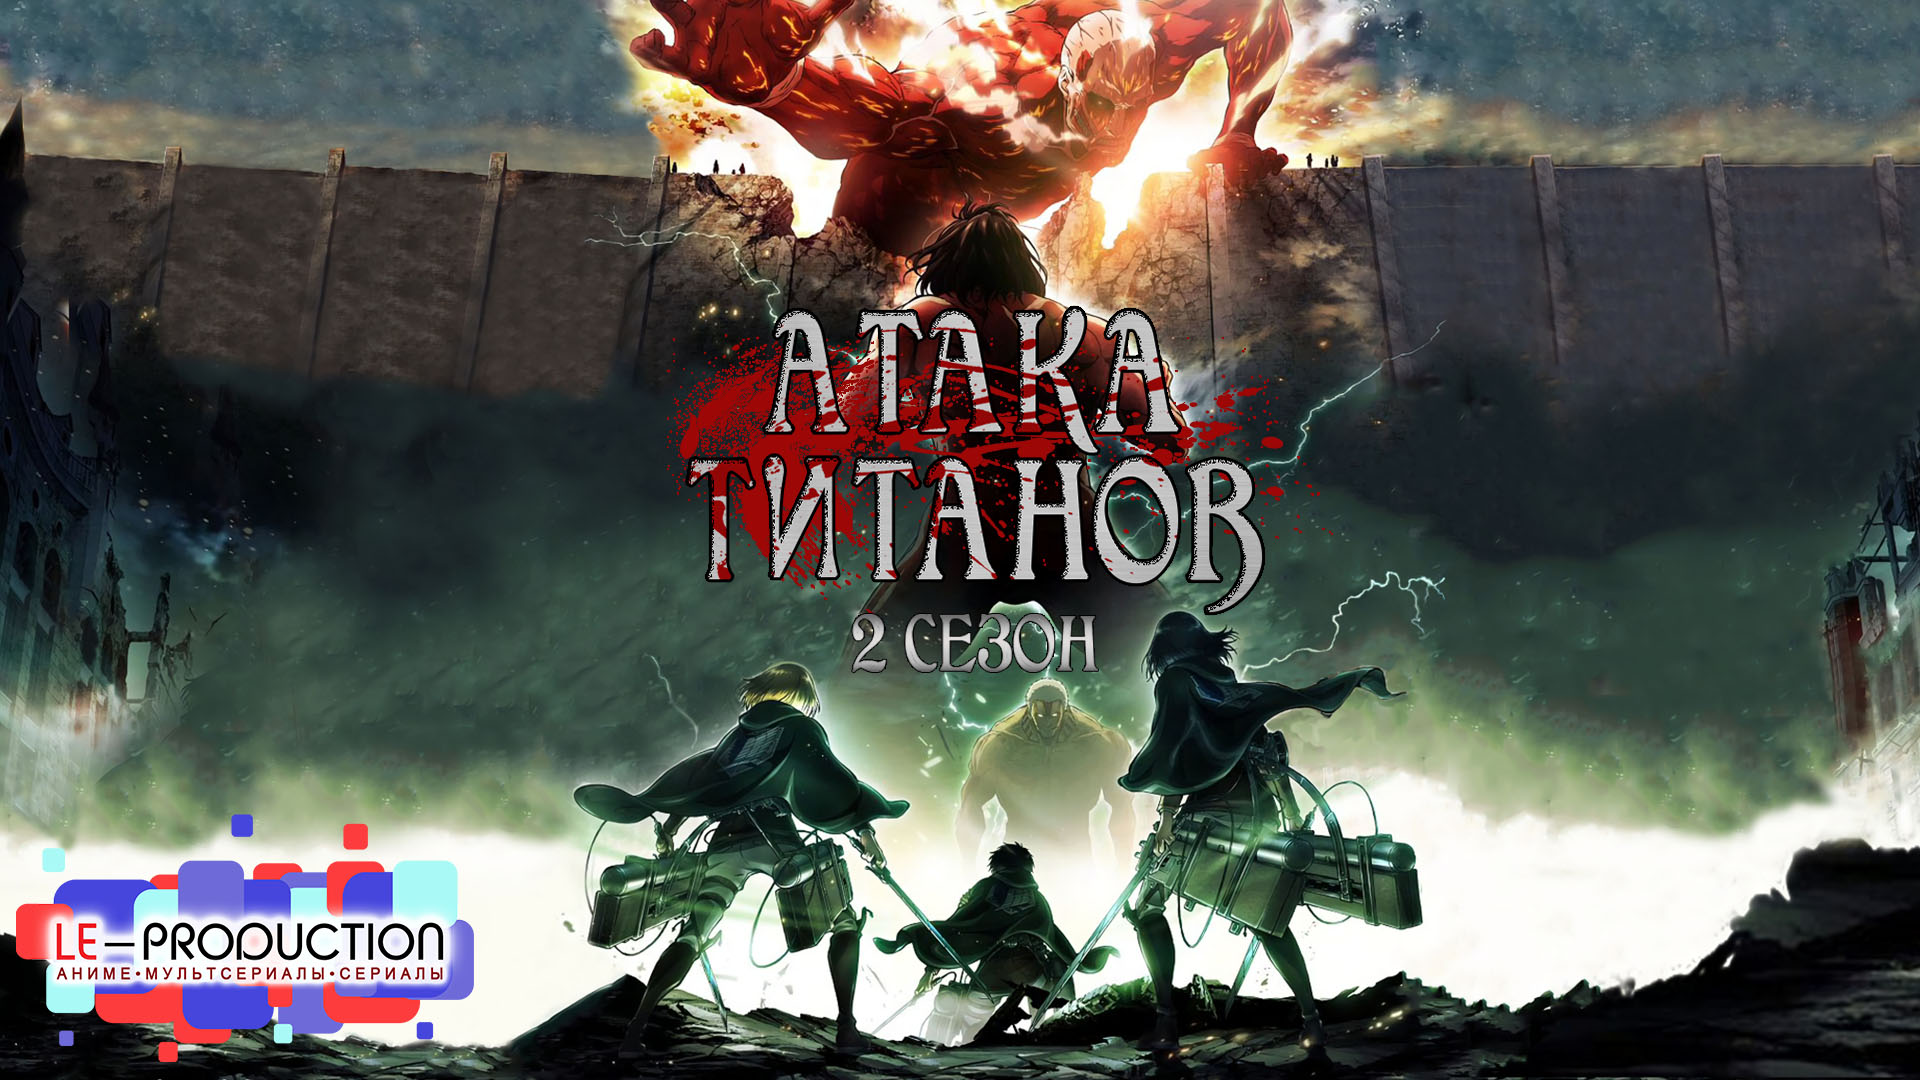 Вторжение гигантов [ТВ-2] /… / Attack on Titan Season 2 / Shingeki no Kyojin Season 2 / 進撃の巨人 Season 2